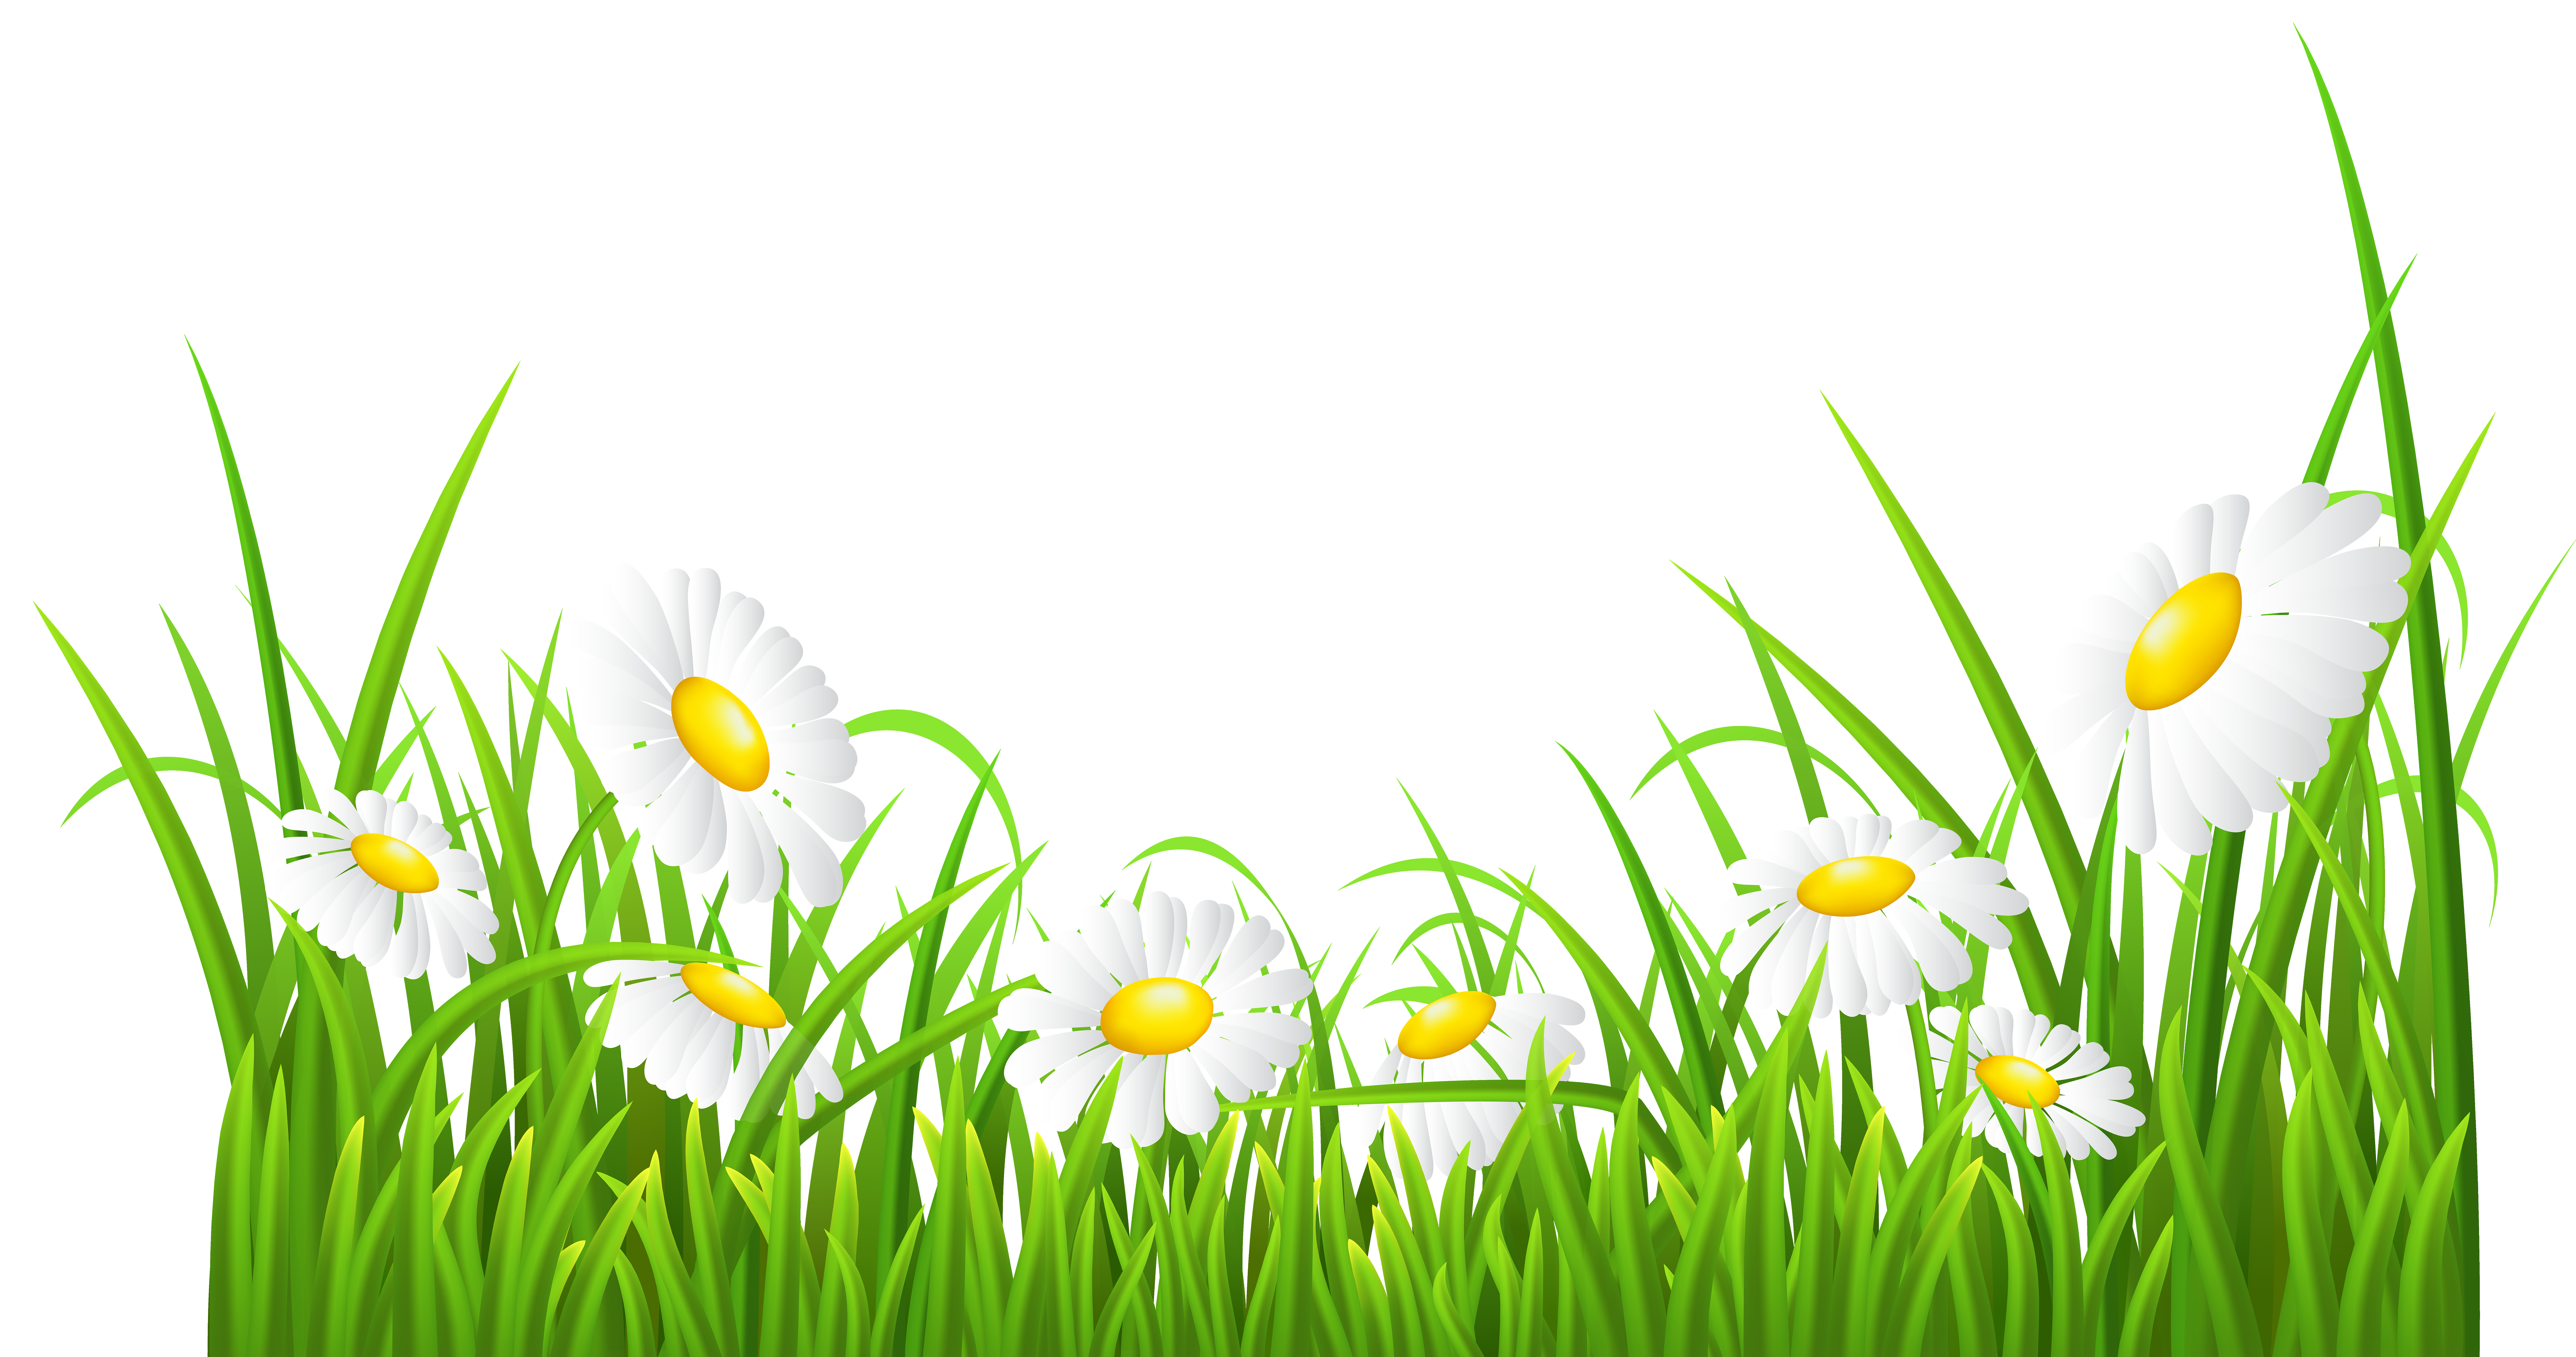 Daisy clipart landscape. White daisies and grass